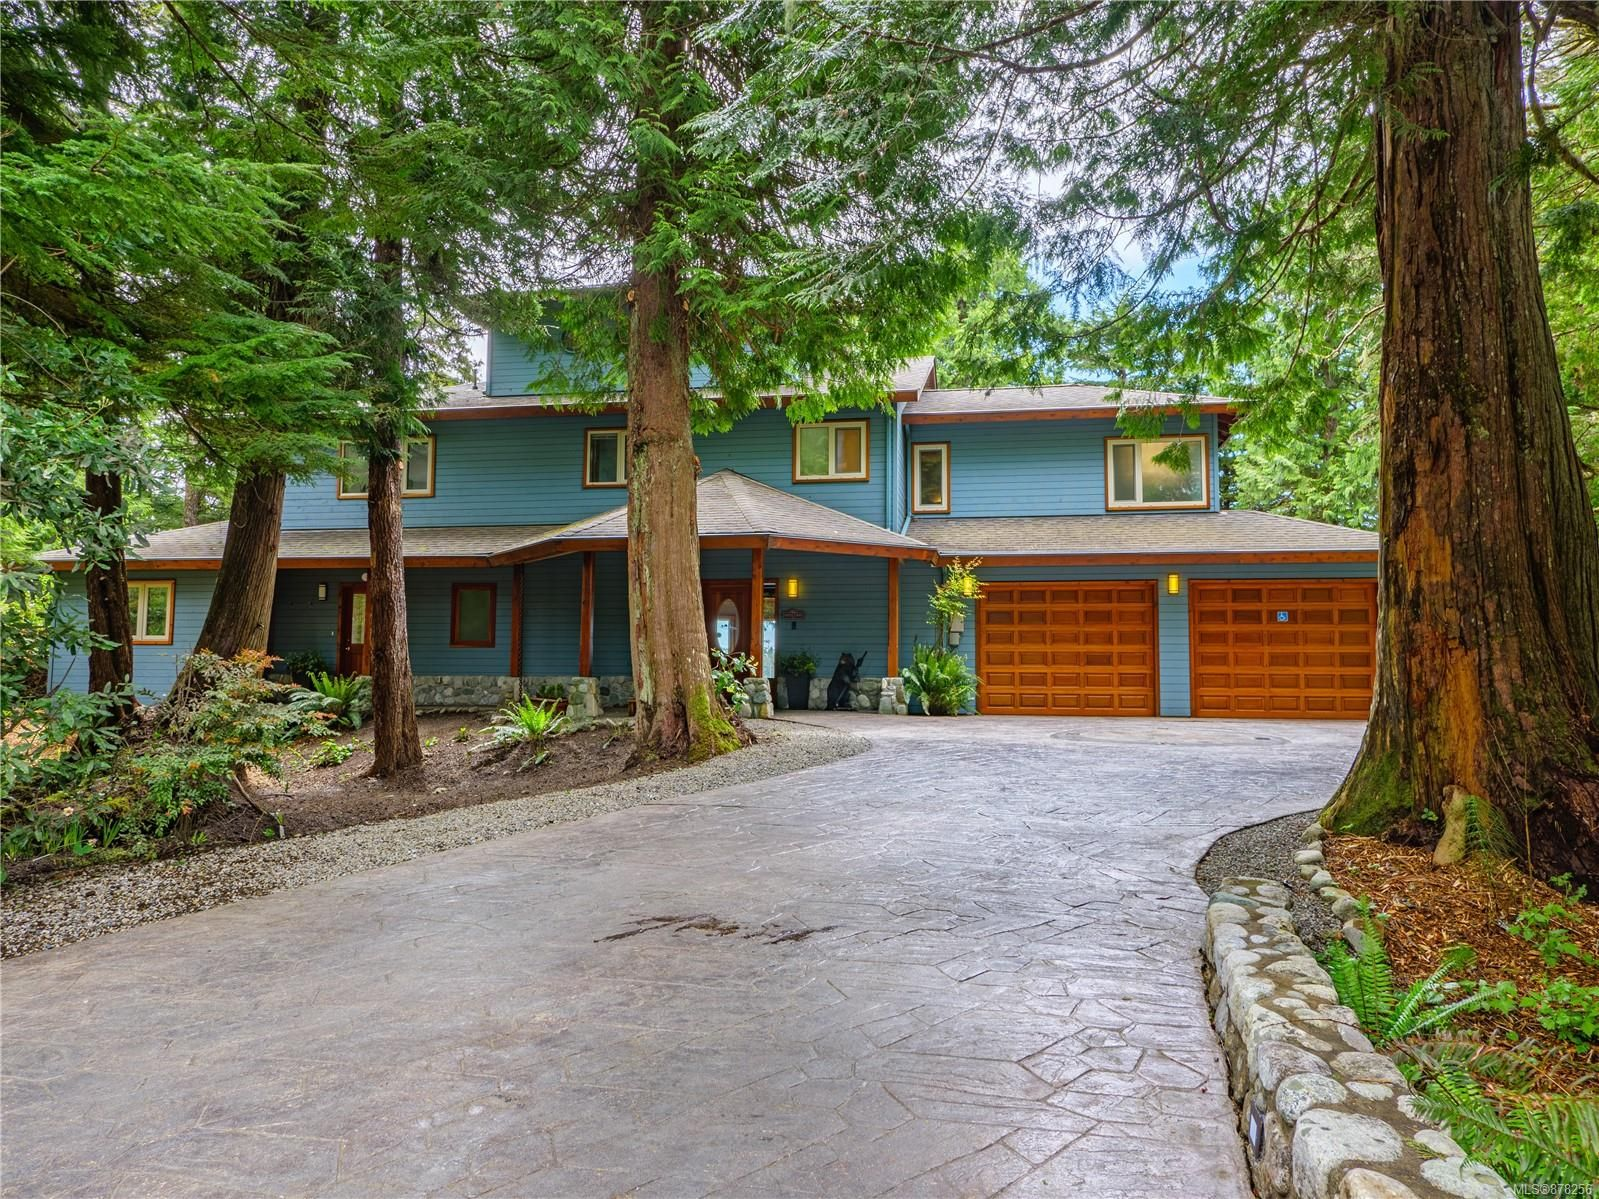 Main Photo: 460 Marine Dr in : PA Ucluelet House for sale (Port Alberni)  : MLS®# 878256